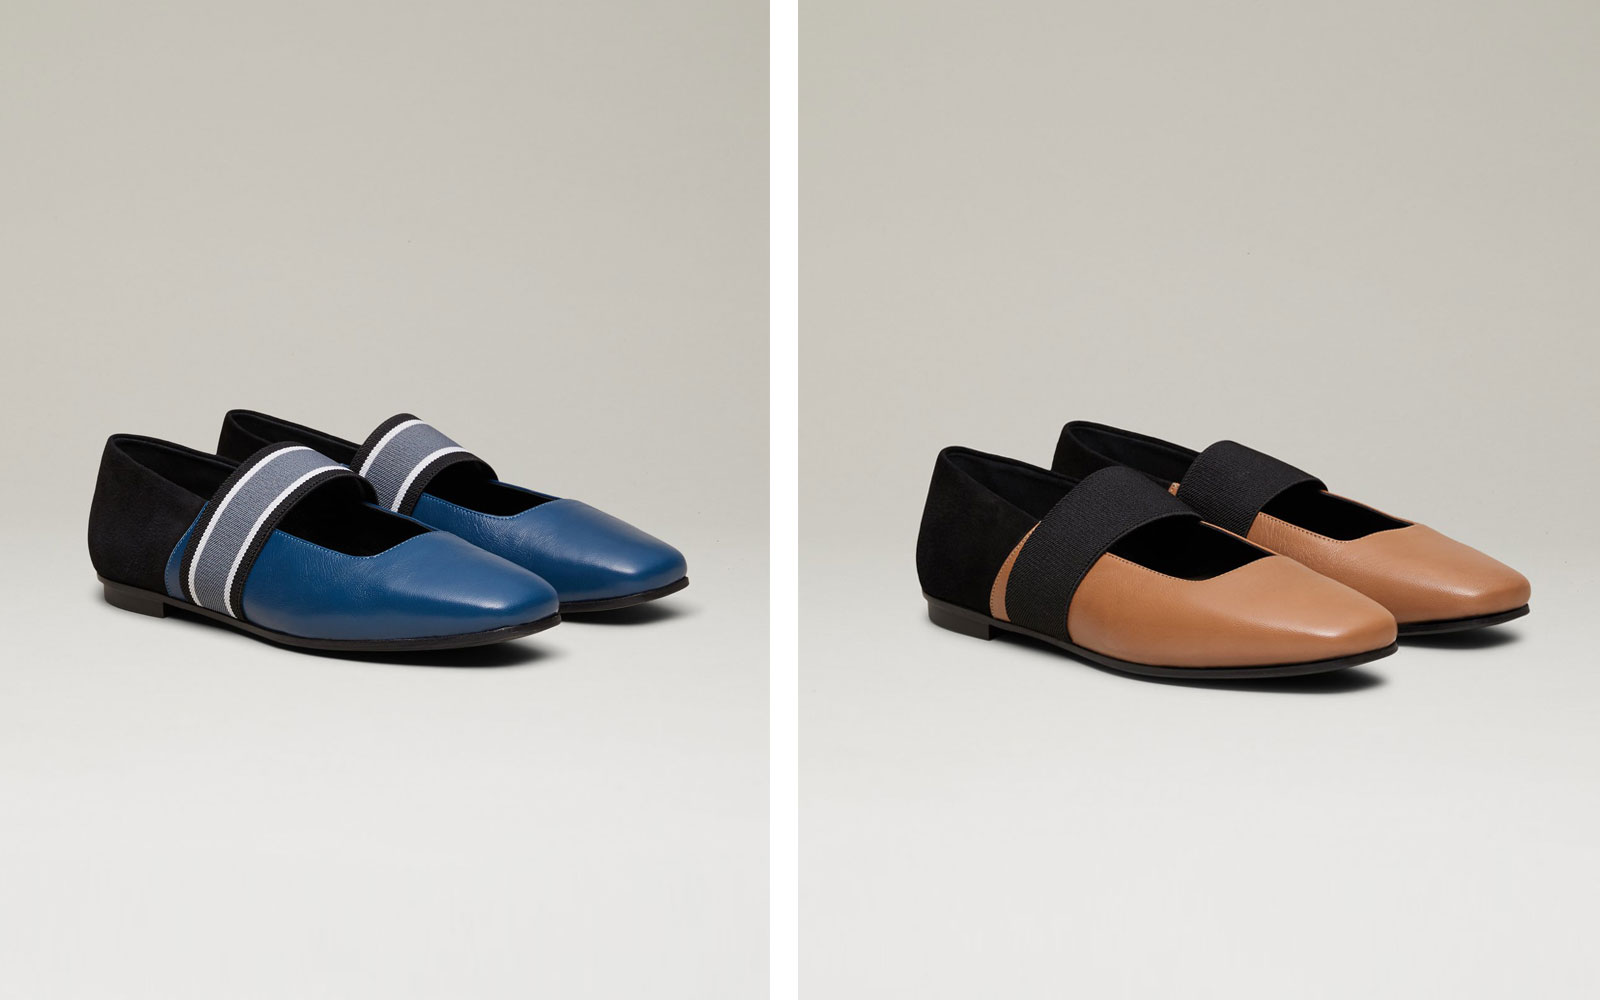 Navy and Grey Ballet Flats and Camel and Black Ballet Flats